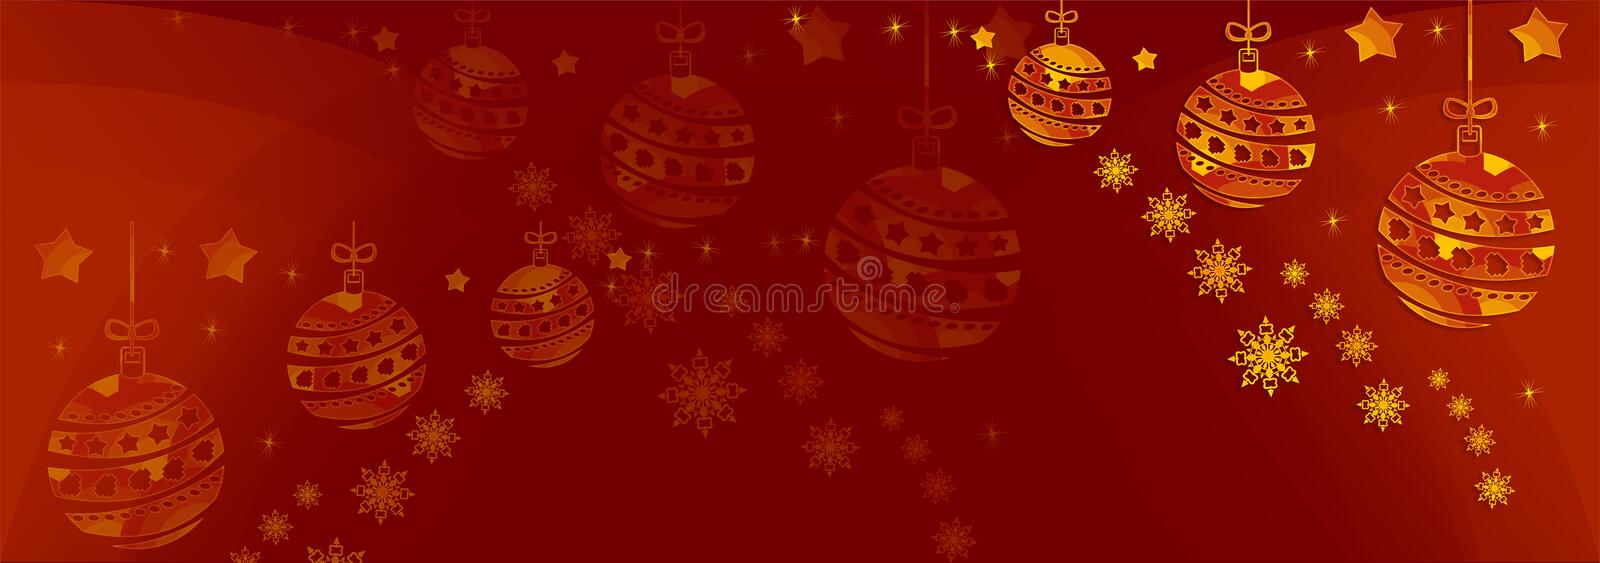 Christmas Illustration A Red Christmas background with gold baubles & snowflakes. royalty free stock photo